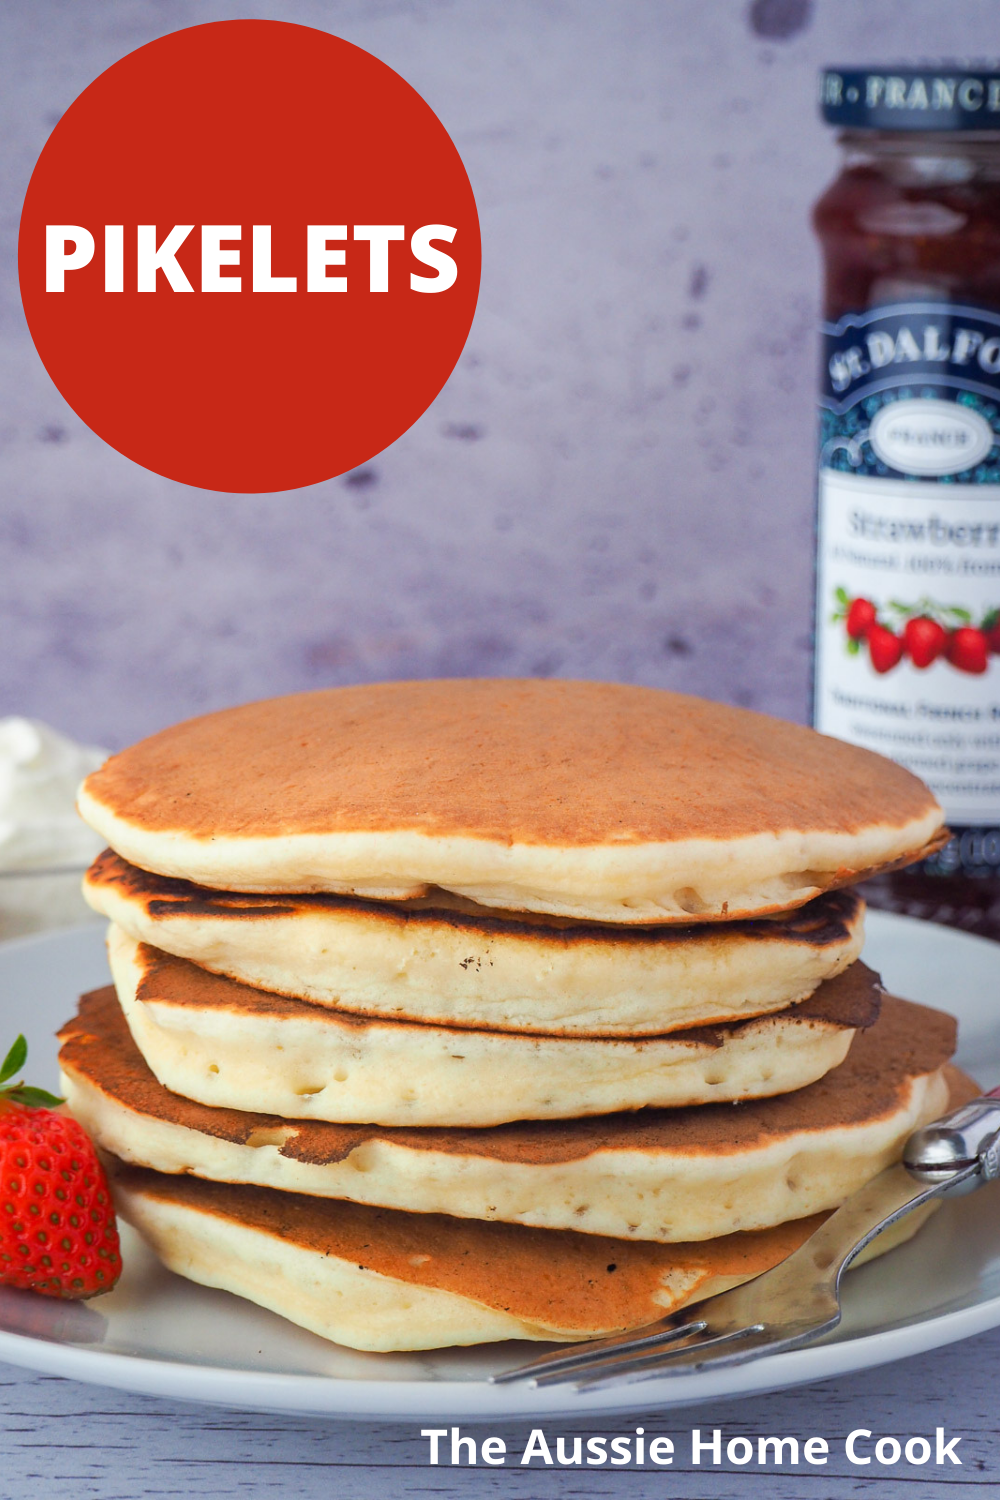 Stack of pikelets on a plate, with a fresh strawberry and fork, and whipped cream and jar of strawberry jam in the background, with text overlay Pikelets, The Aussie Home Cook.